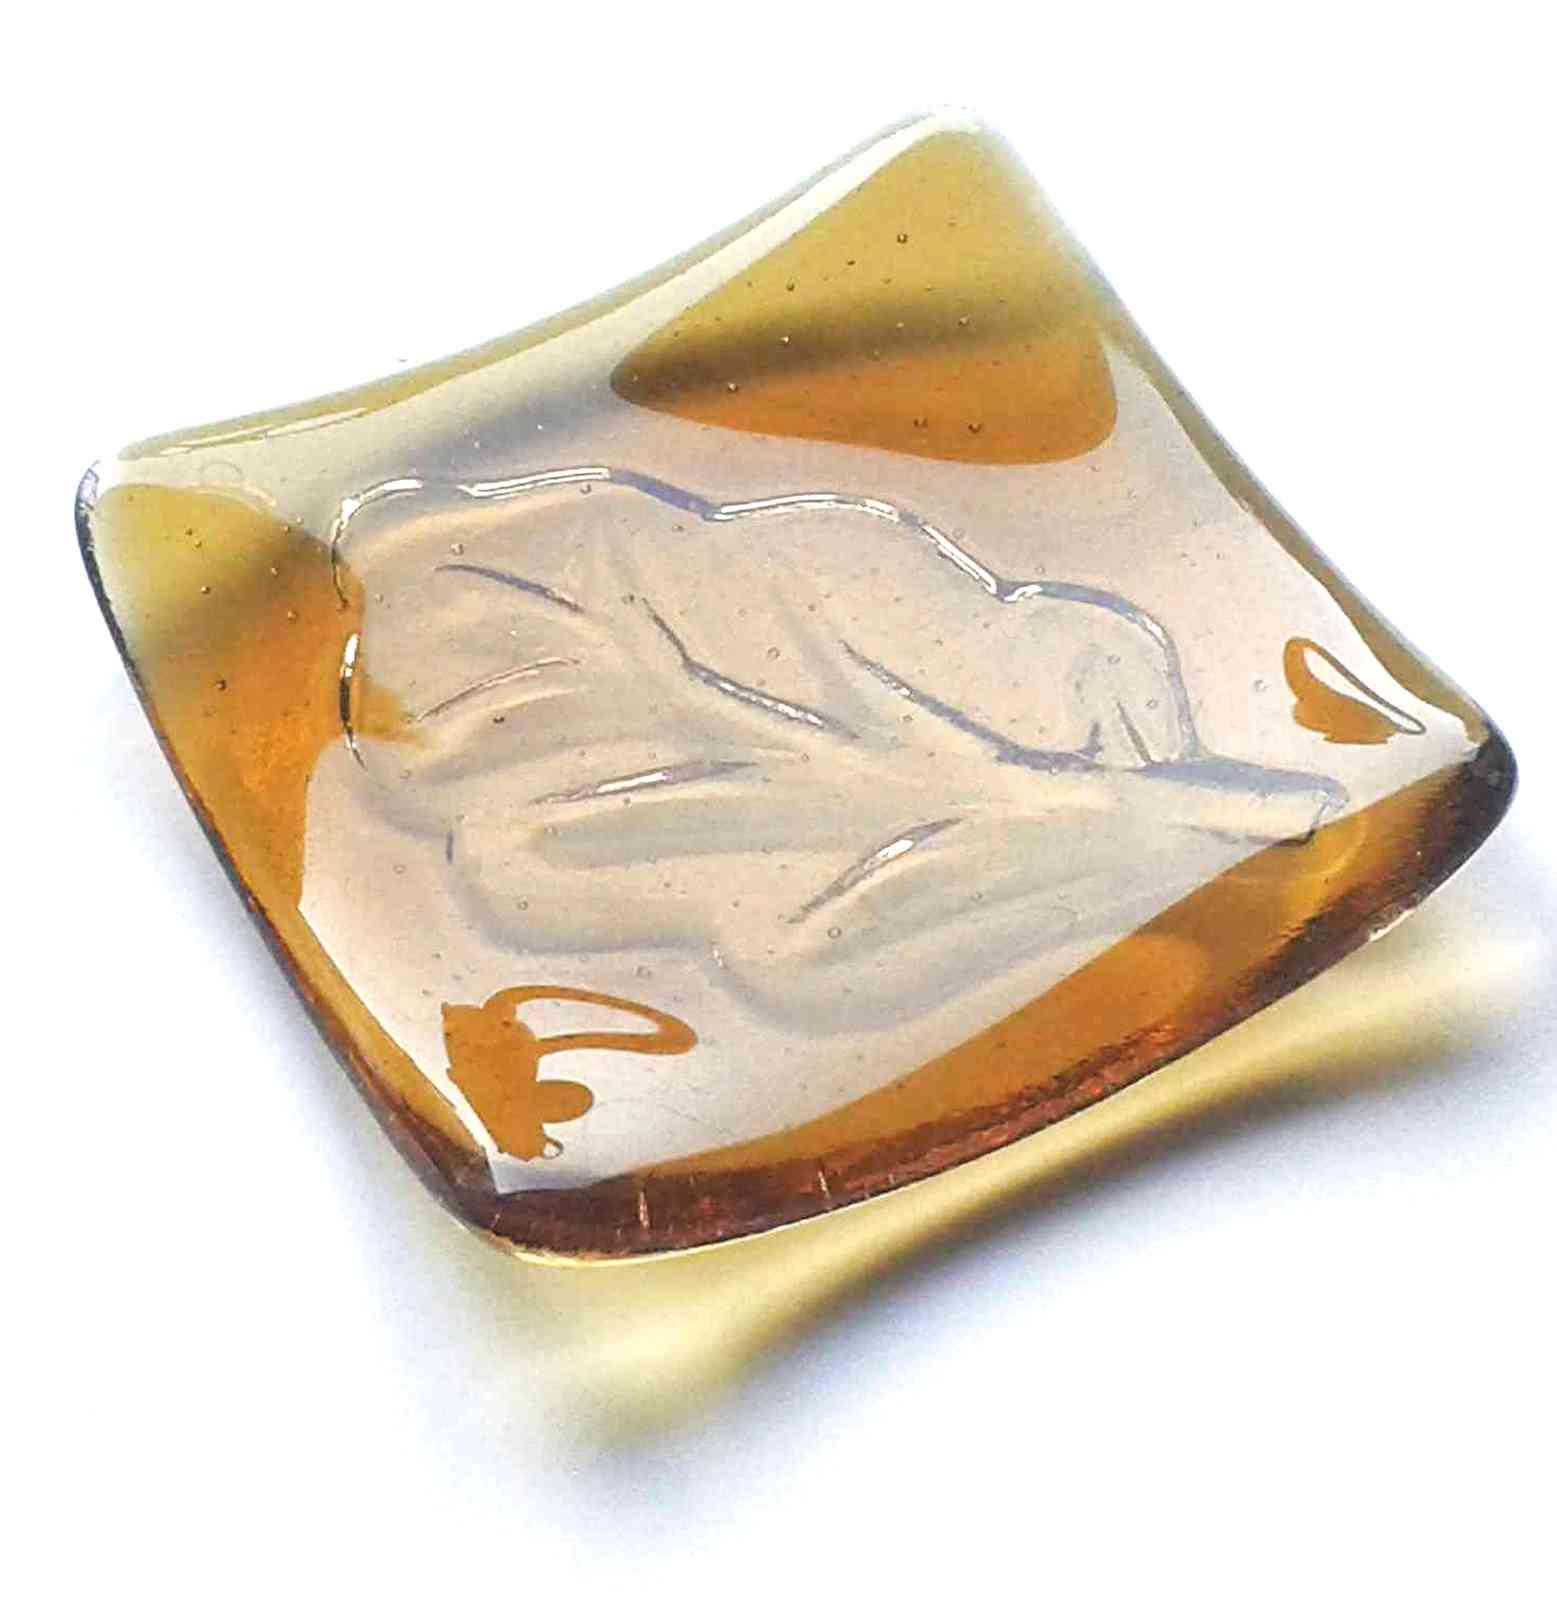 Fused glass art and dishes in designs inspired by nature and local landscapes, handcrafted in north-east England. Made in Britain.